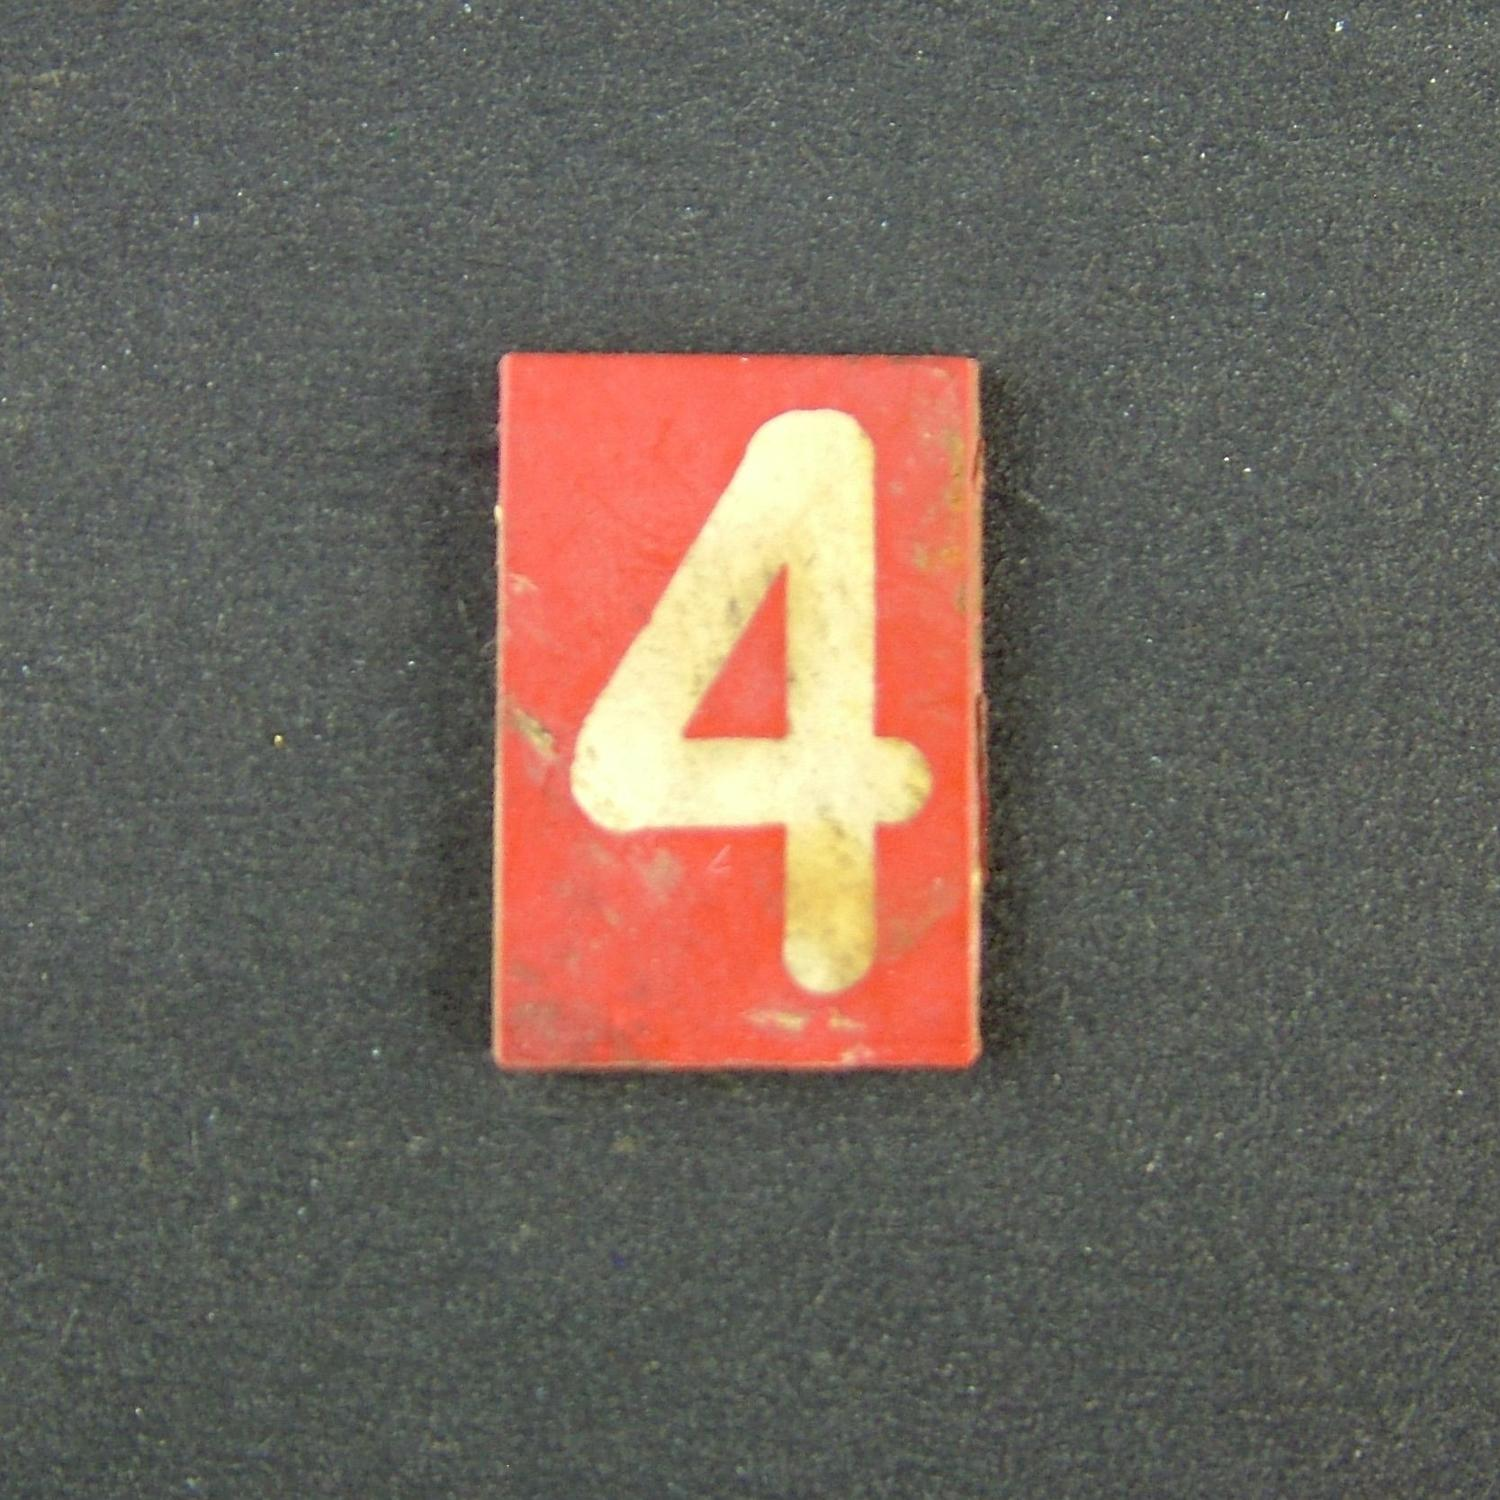 RAF operations room raid block tile '4'